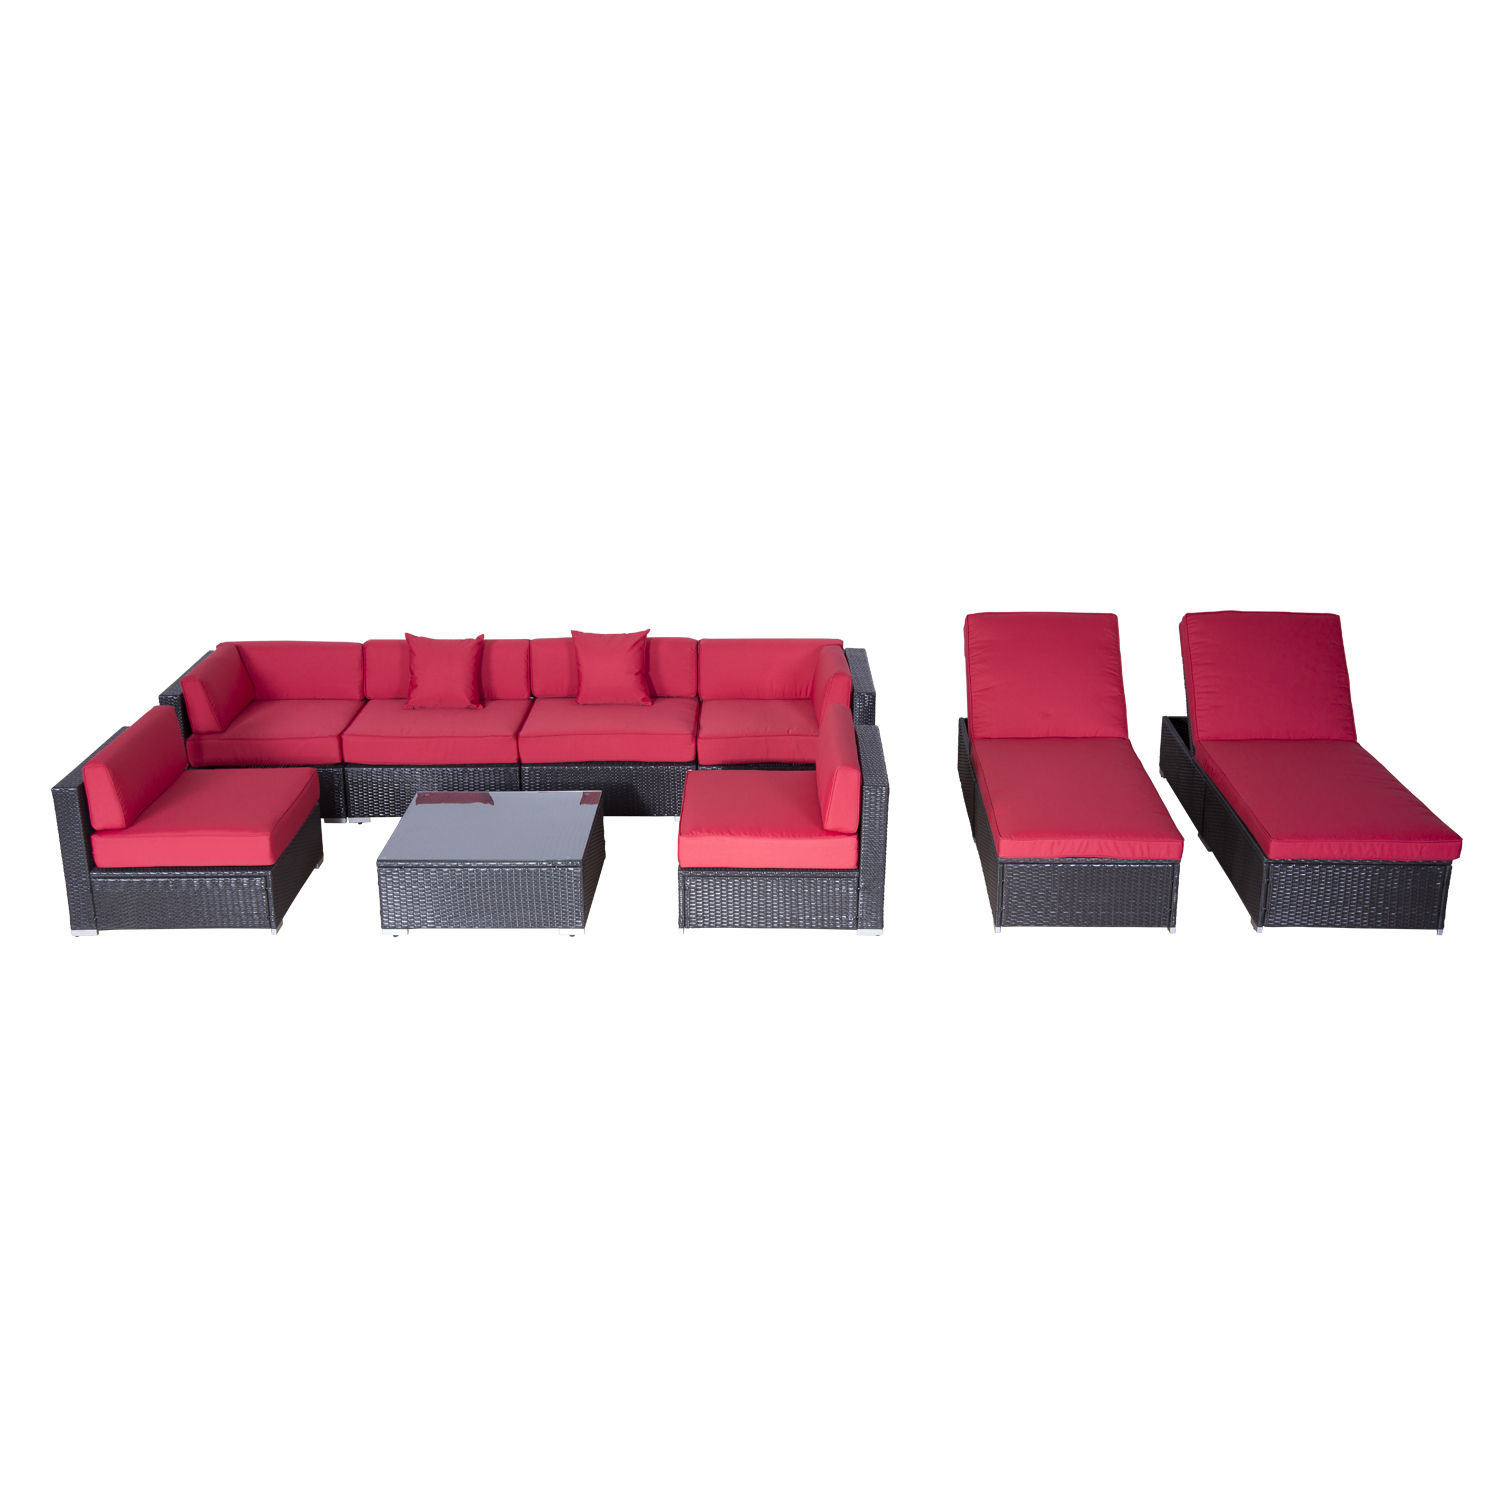 Outsunny Modern 9 Piece Outdoor Patio Rattan Wicker Sofa Sectional